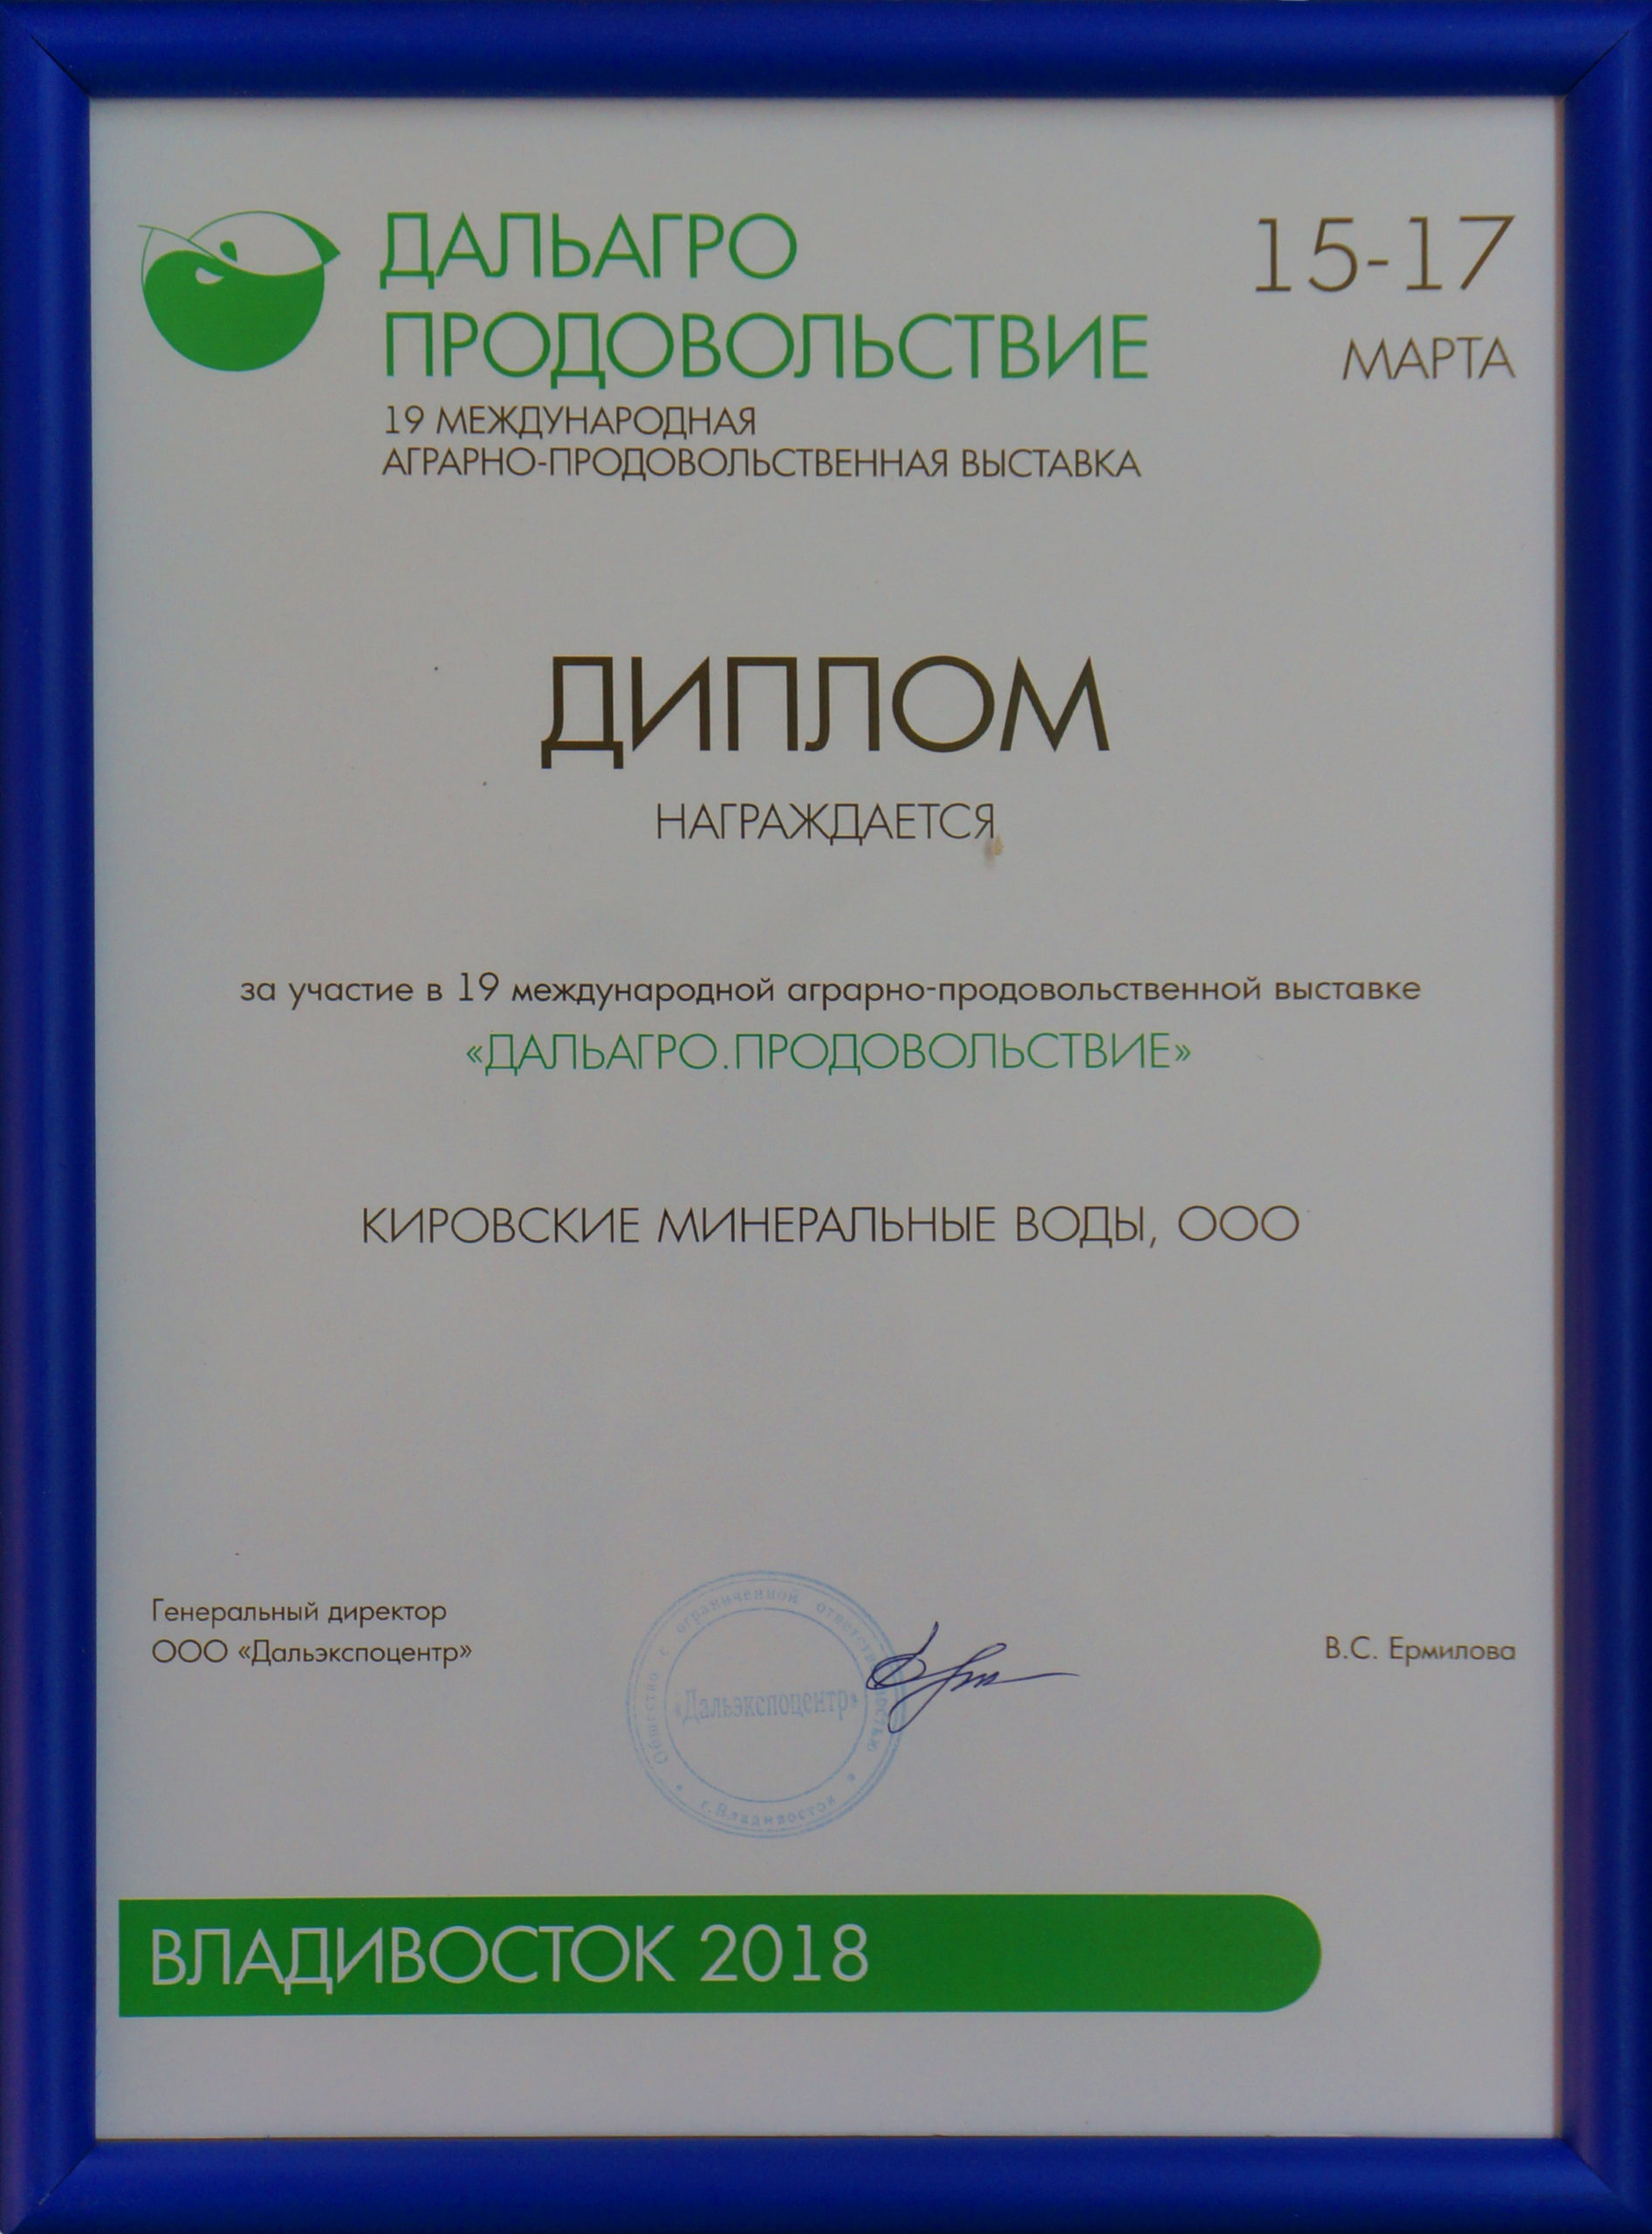 """""""Shmakovskaya"""" was awarded the Diploma of the participant of the exhibition """"Dalagro. Food"""" 2018"""